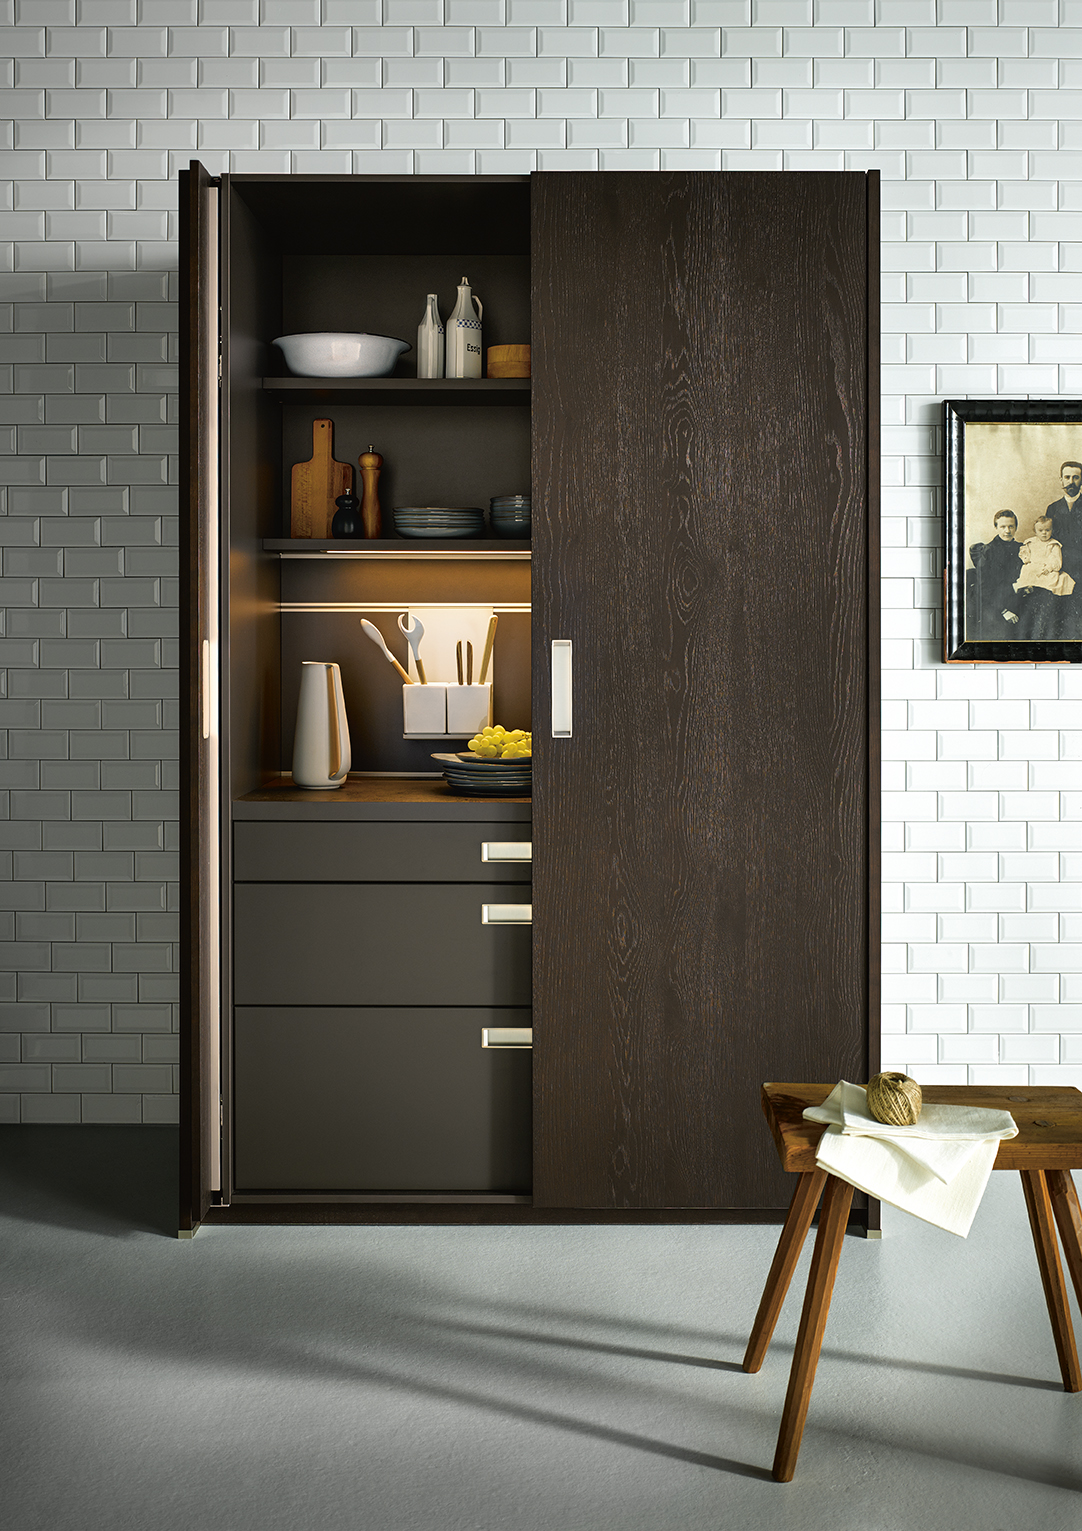 - Lynne tells us that a key trend in design is the creation of a less cluttered look, echoing the storage solutions which allow for items to be stowed away out of sight and reducing the number of wall cabinets overhead. This creates space to incorporate artwork, lighting, and tiling which enhances the view back to the kitchen in an open plan configuration.